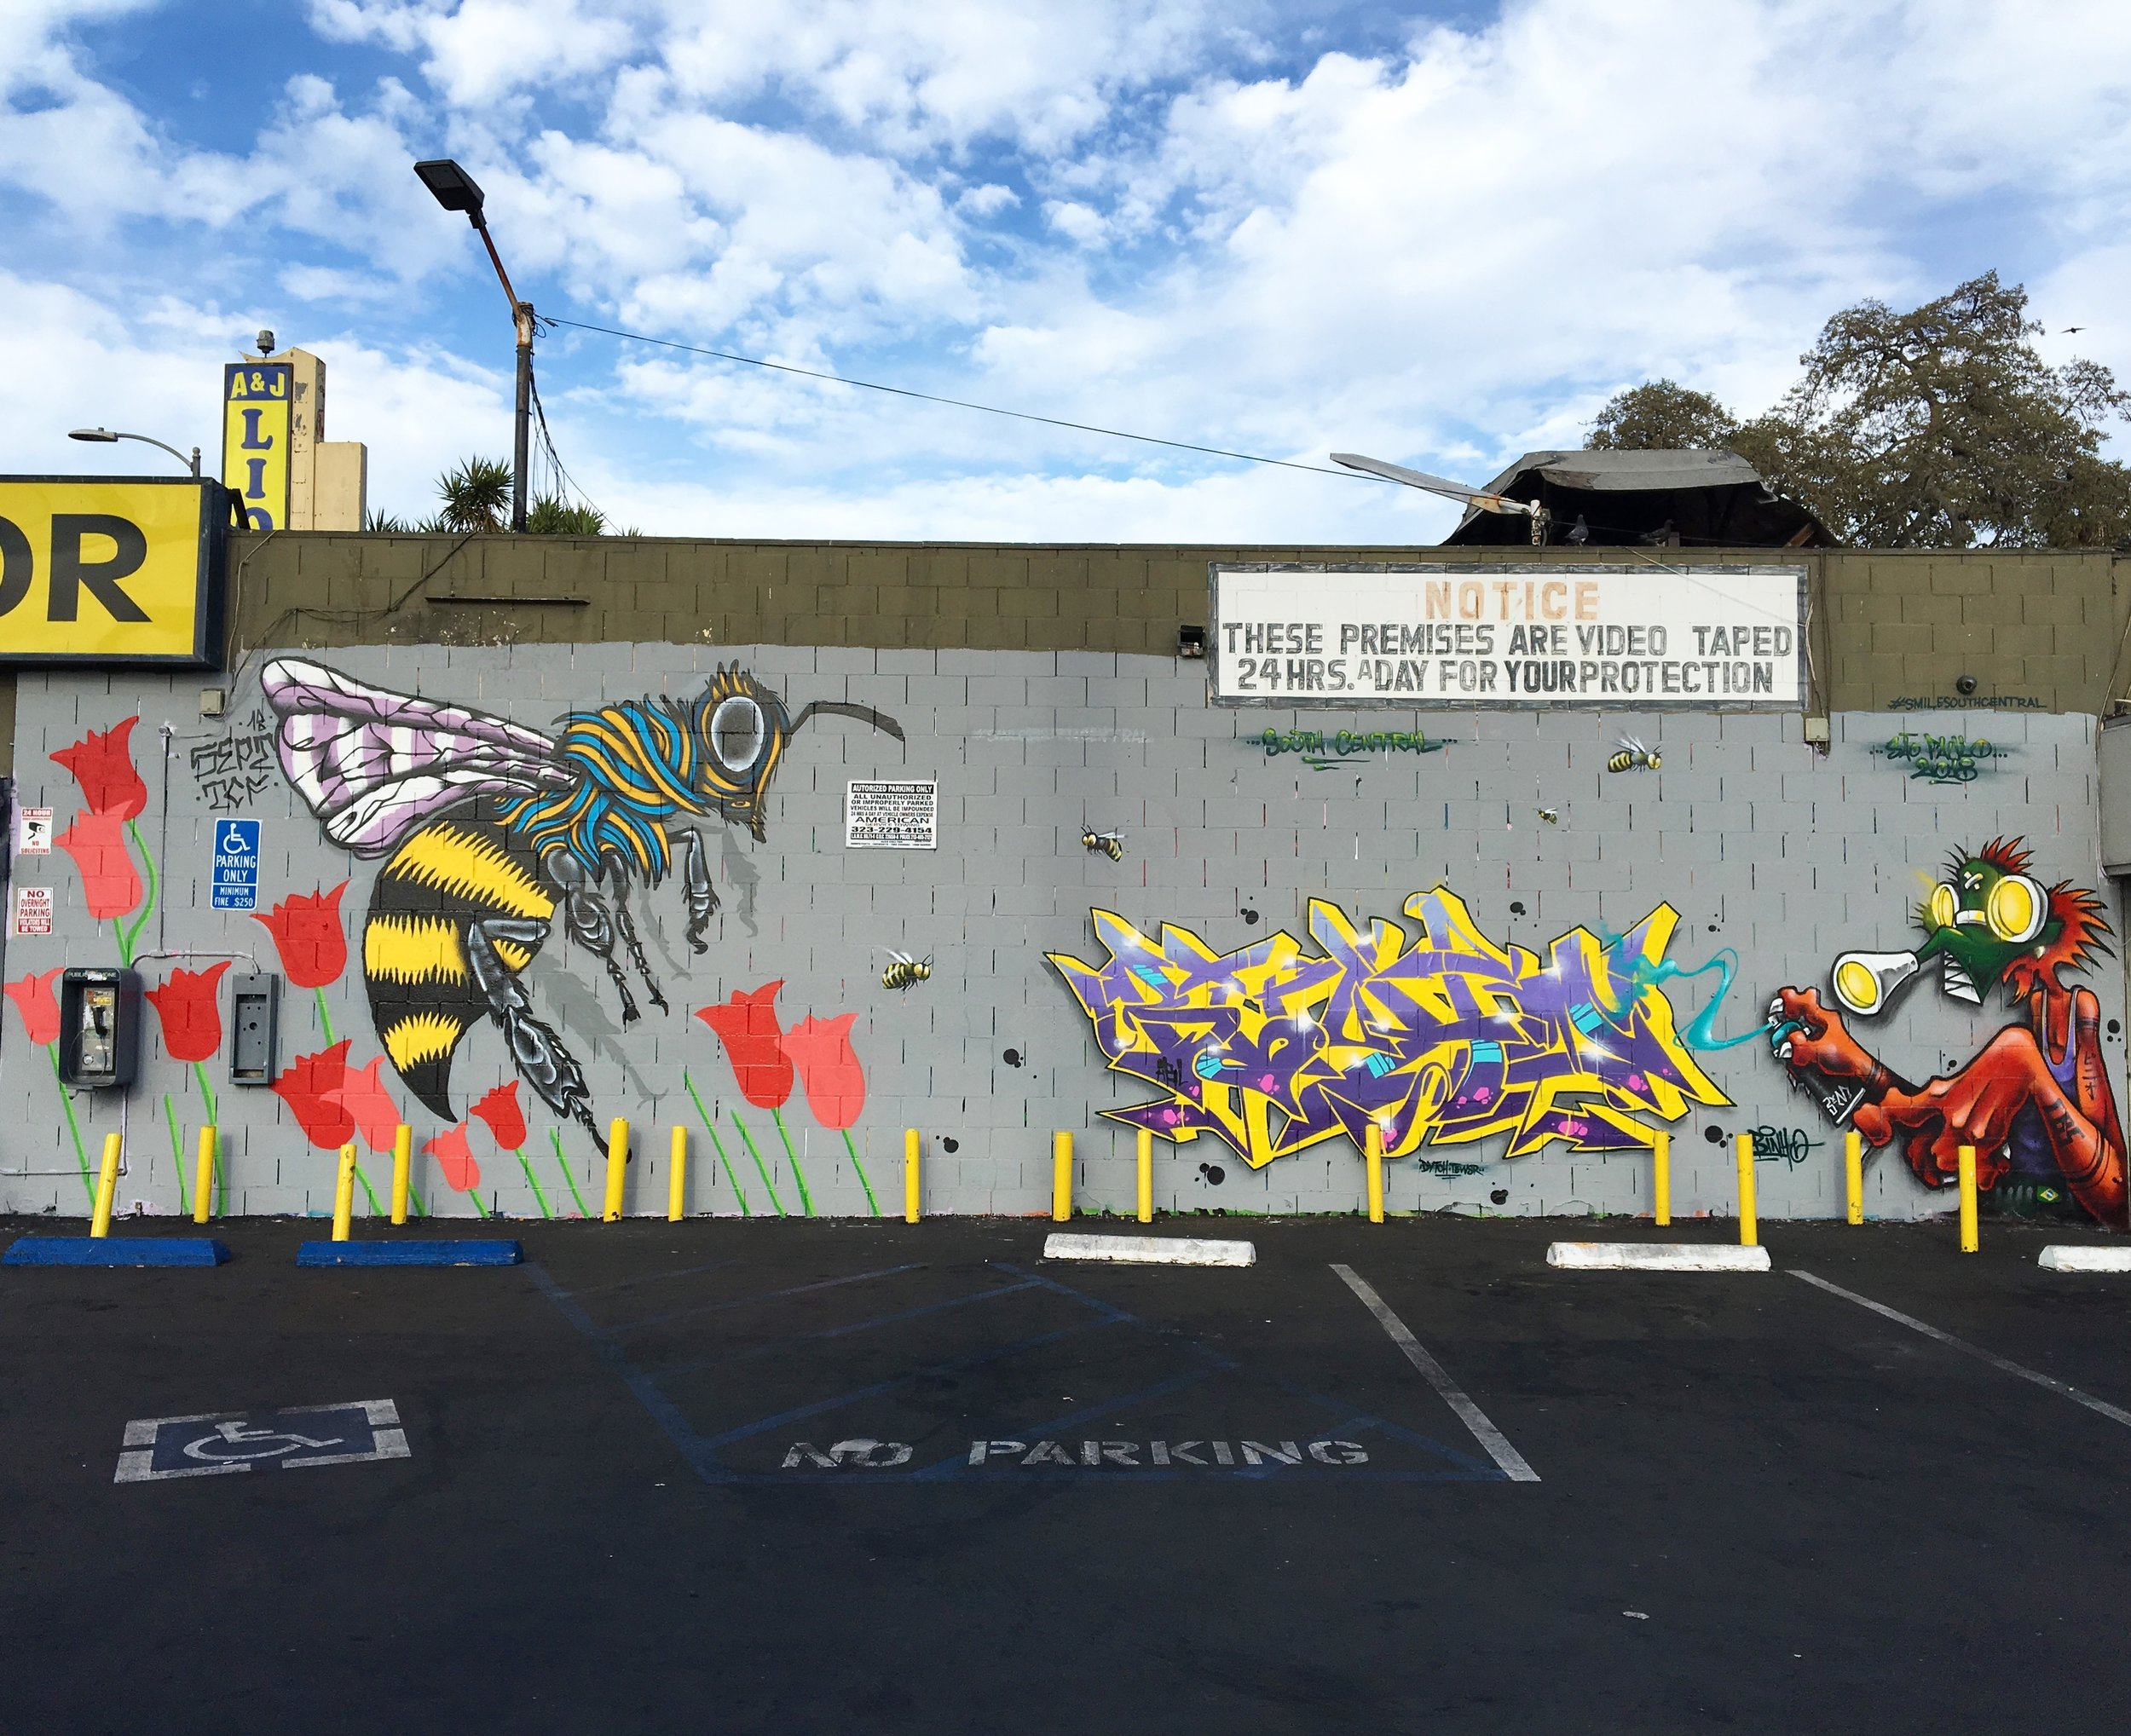 Collab with Binho CBS@binho3m for Smile South Central @smilesouthcentral